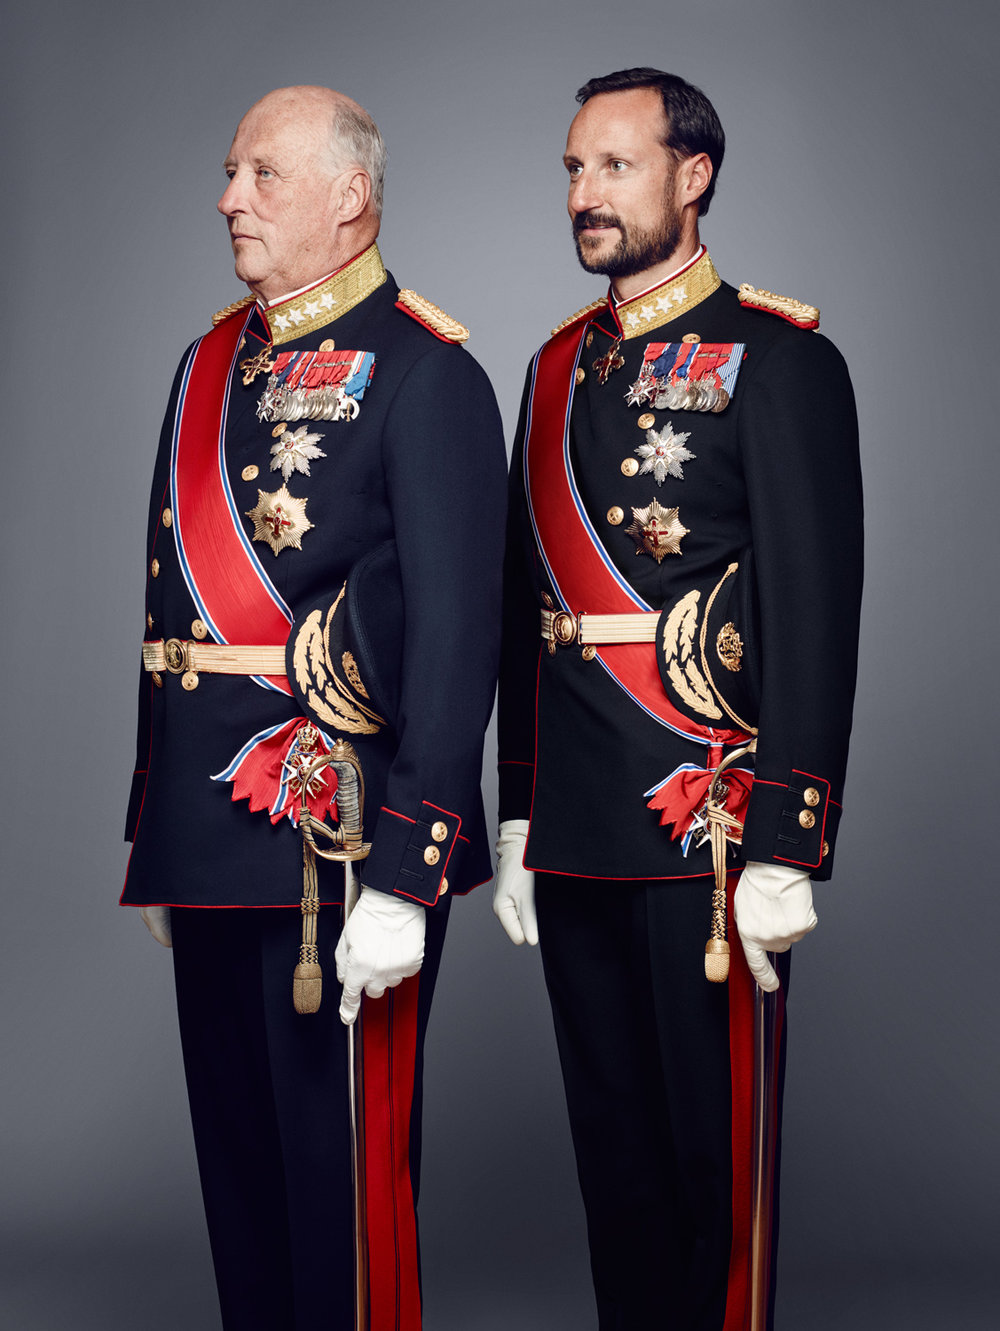 His Majesty King Harald and His Royal Highness Crown Prince Haakon